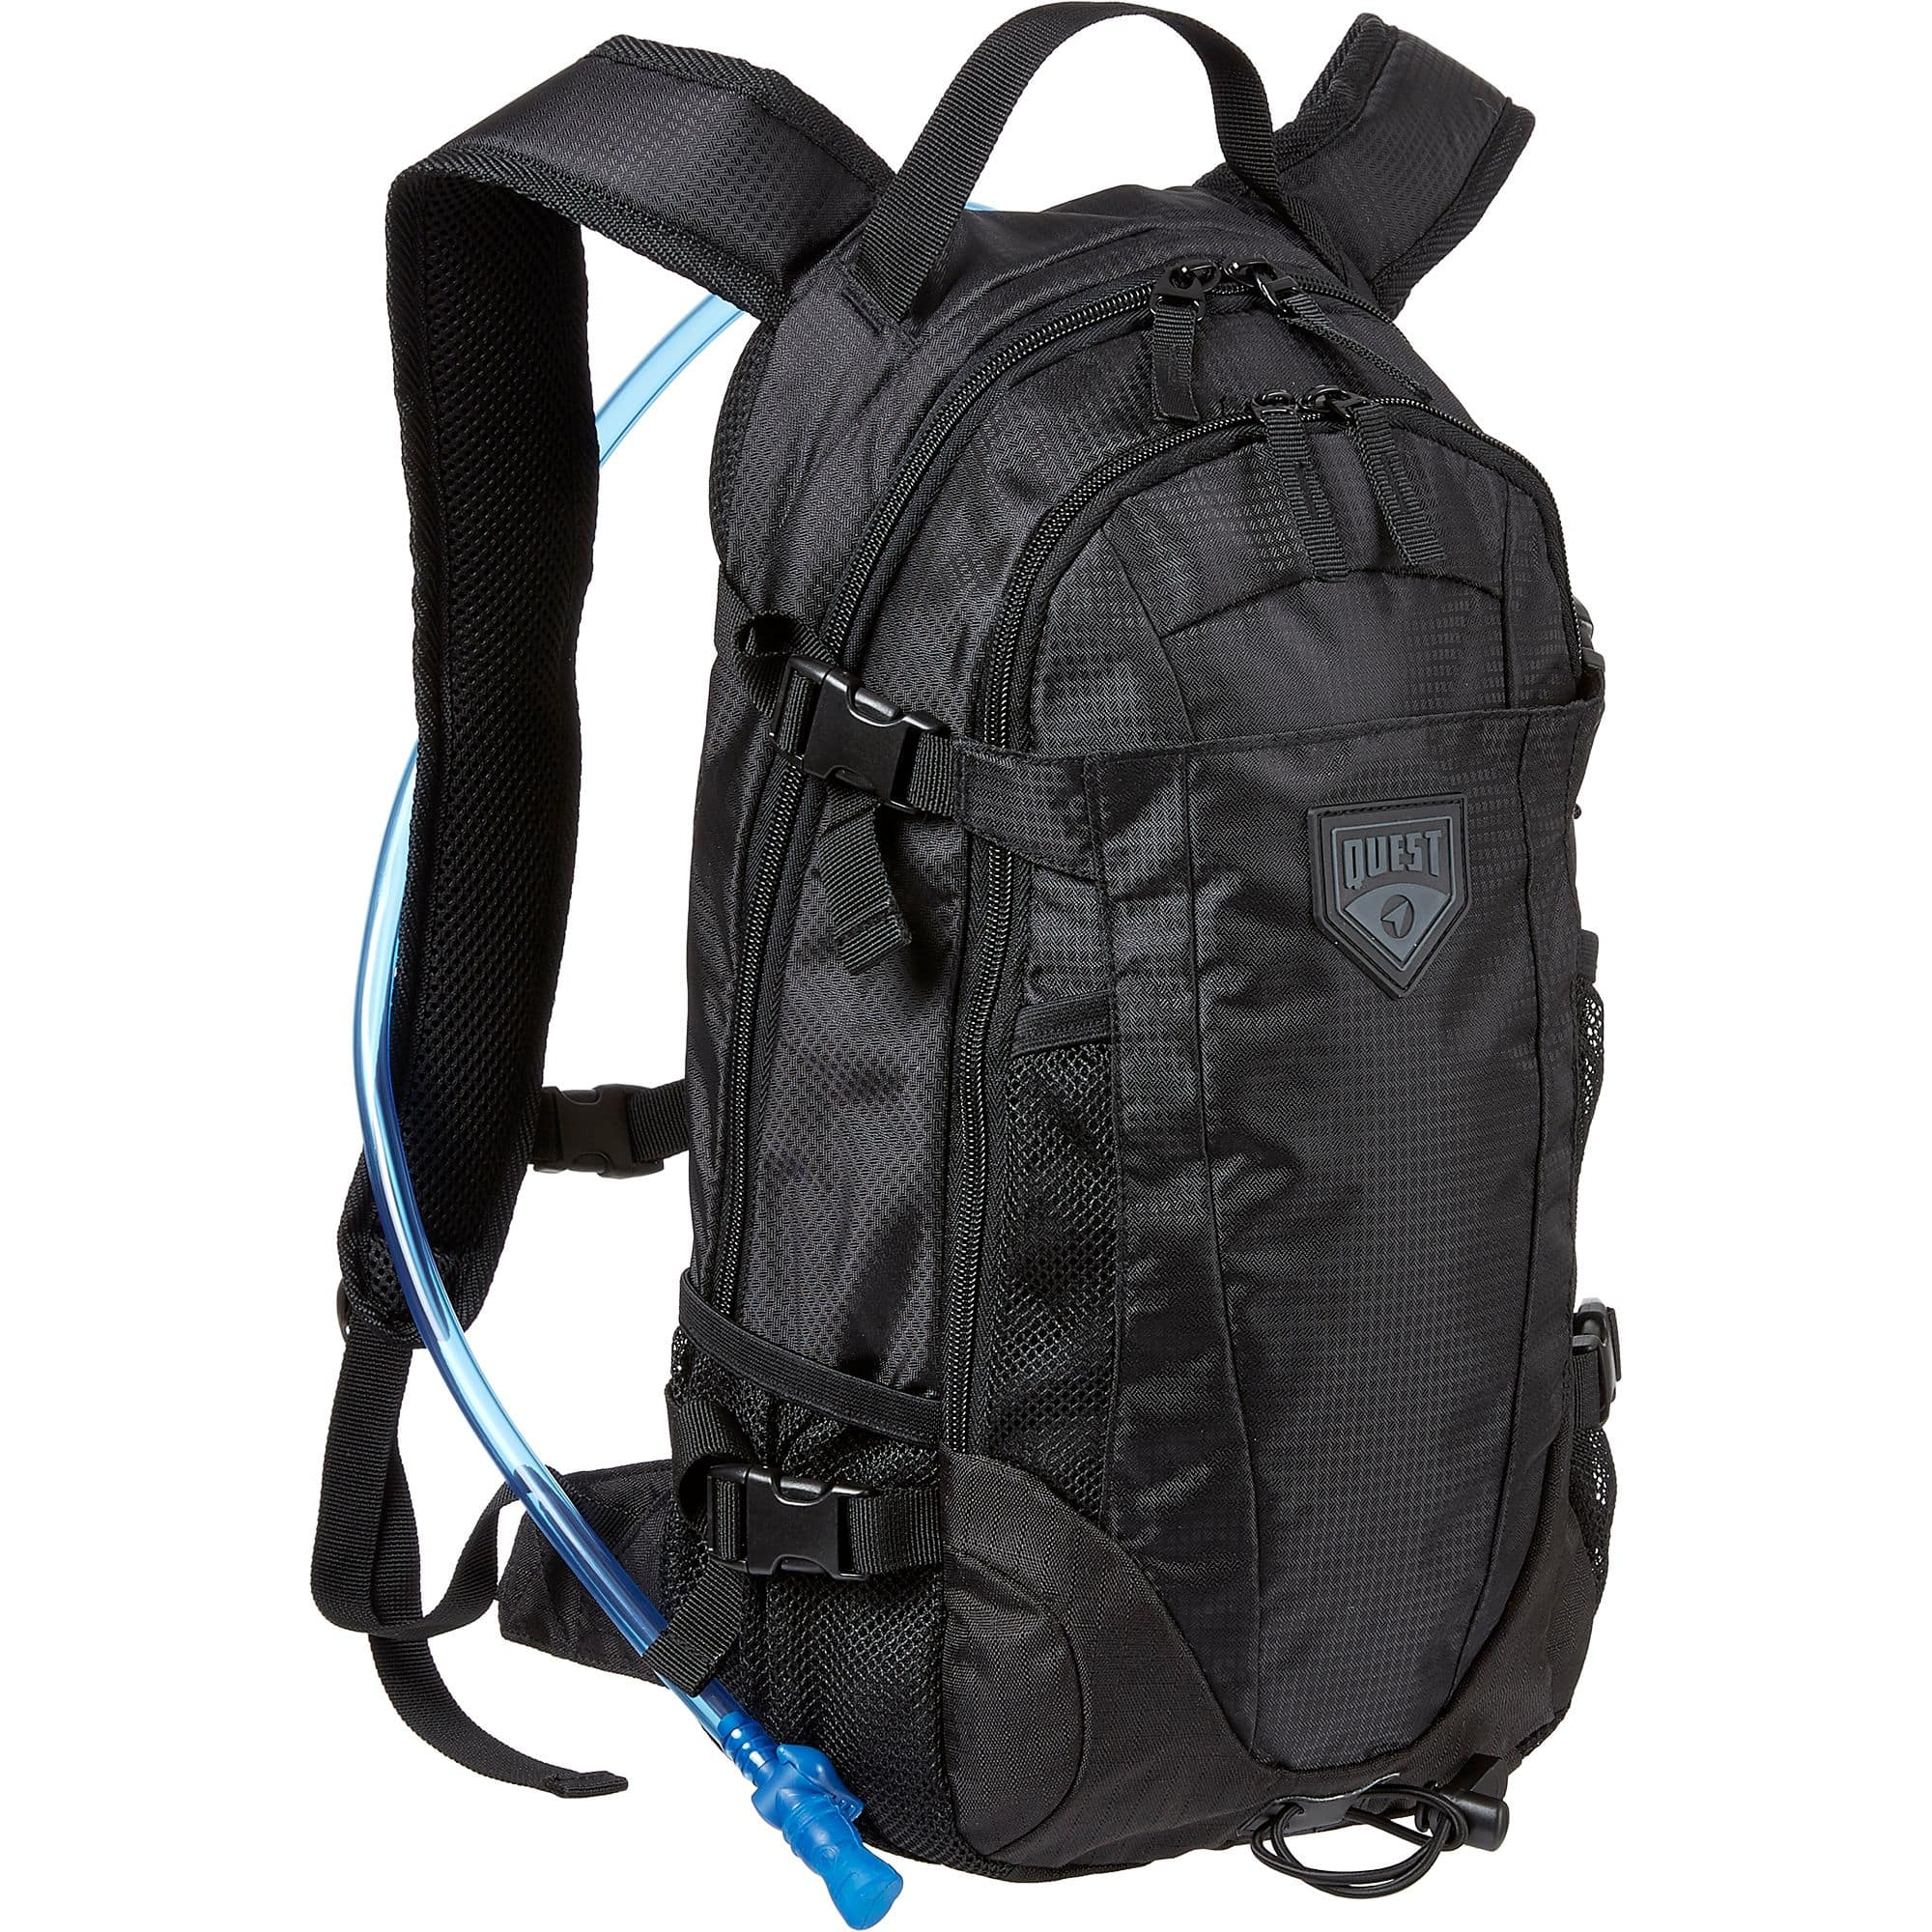 Quest 2L Hydration Backpack (select colors) $25 + Free Store Curbside Pickup at Dick's Sporting Goods or Free Shipping $49+